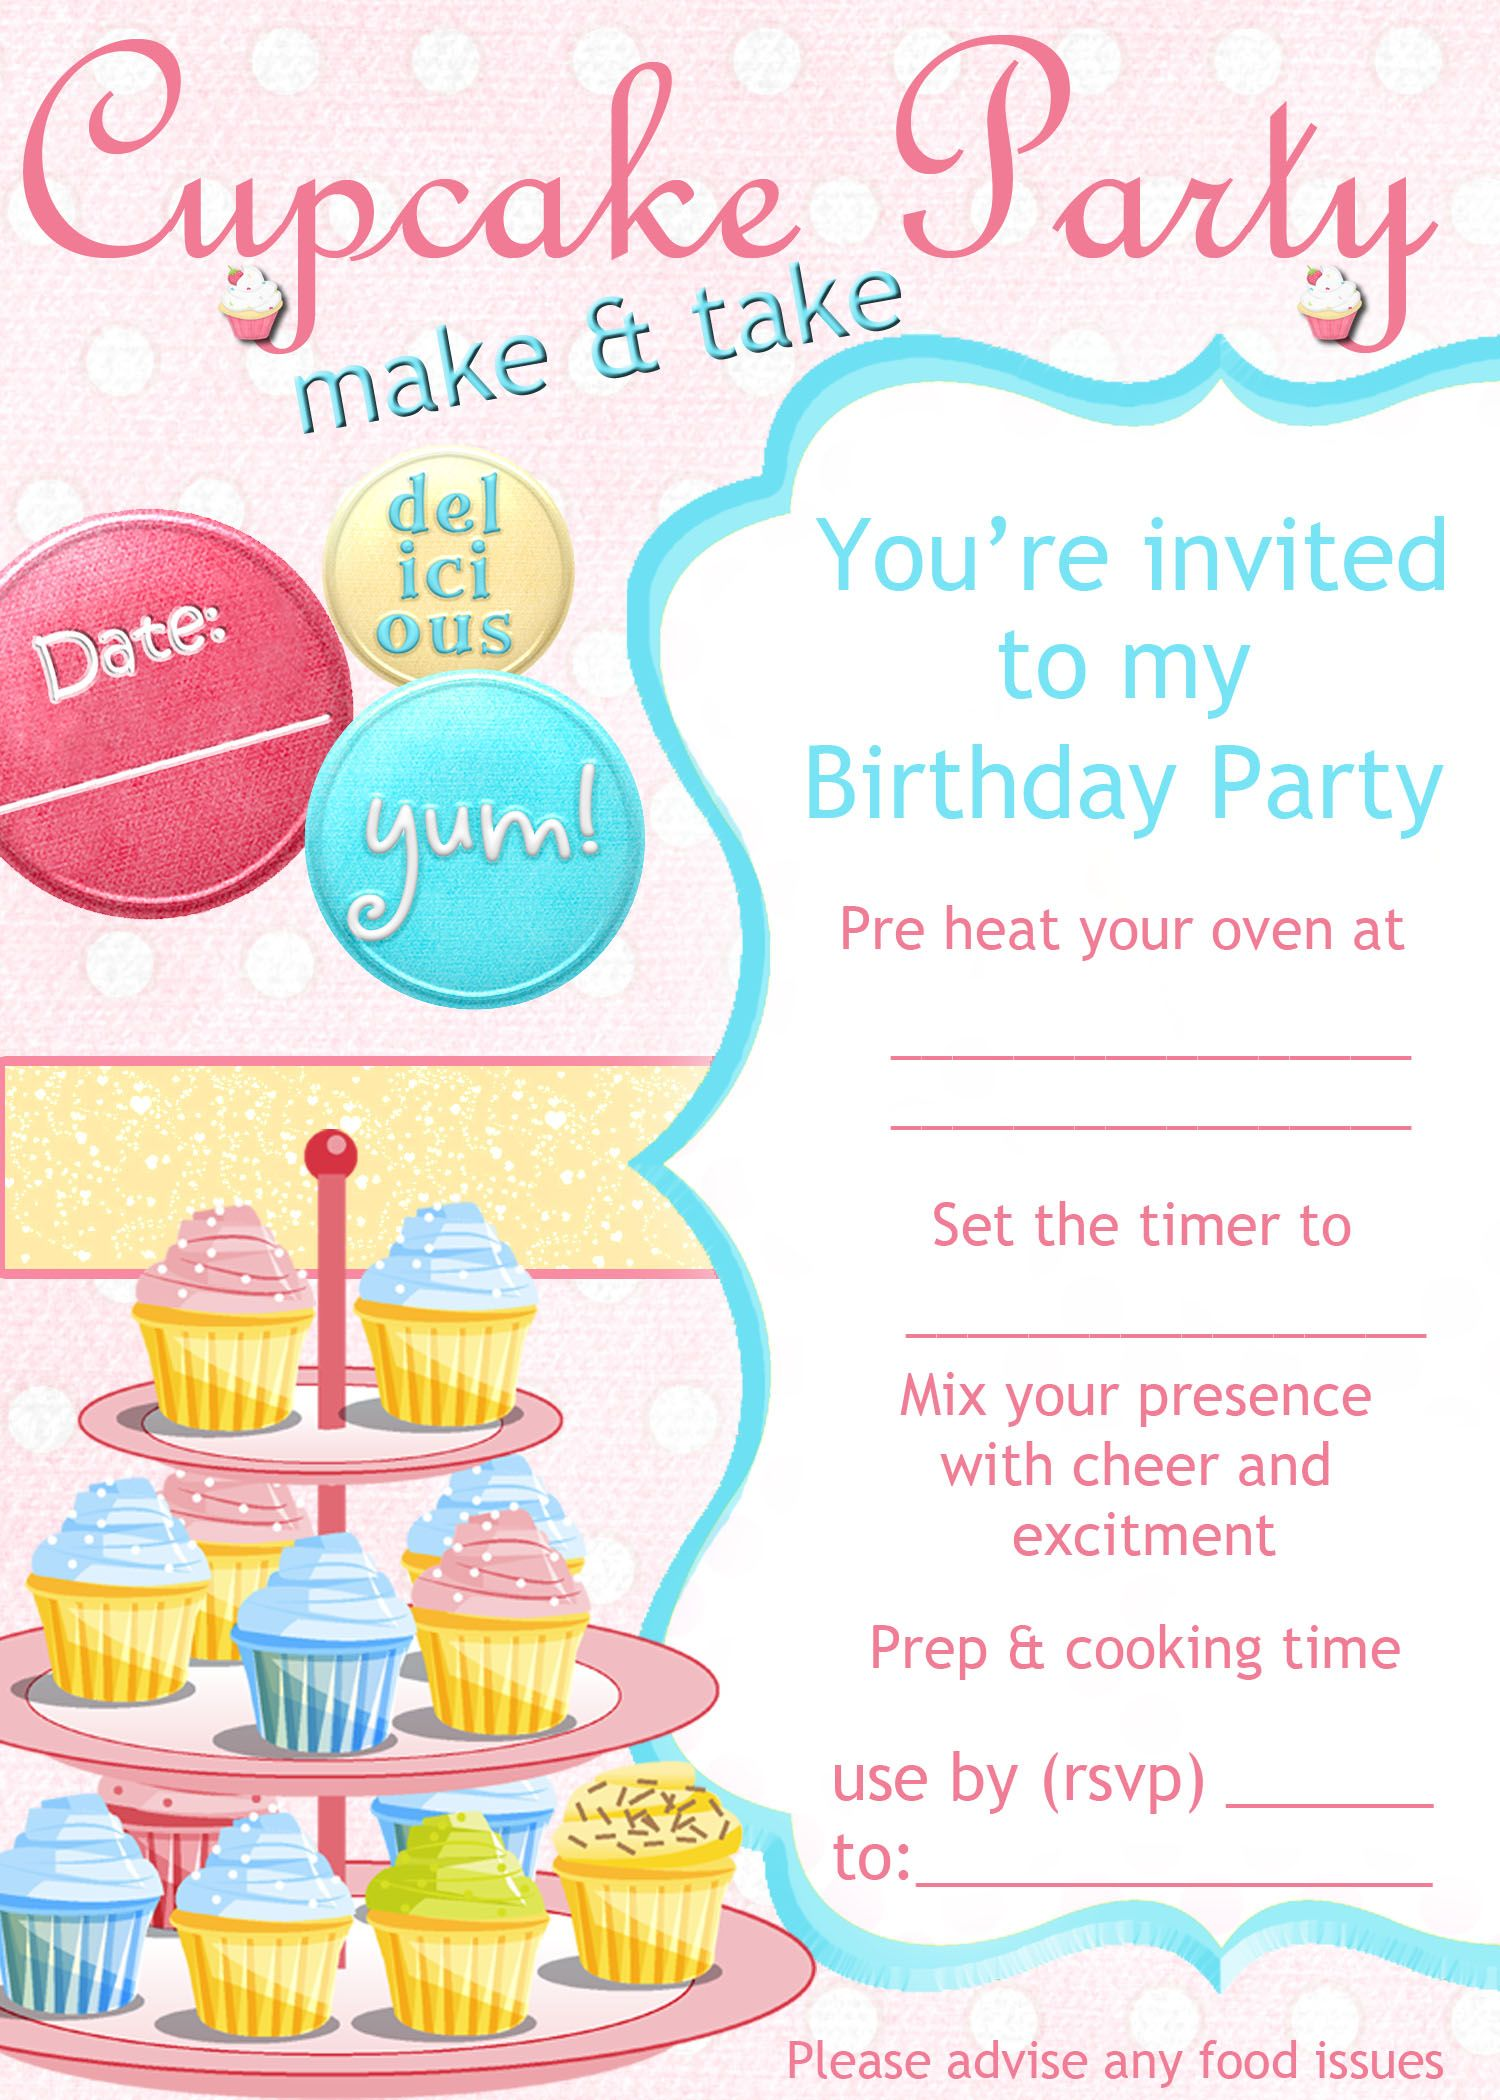 cupcake decorating party invitation putting on a party store cupcake decorating party invitation putting on a party store